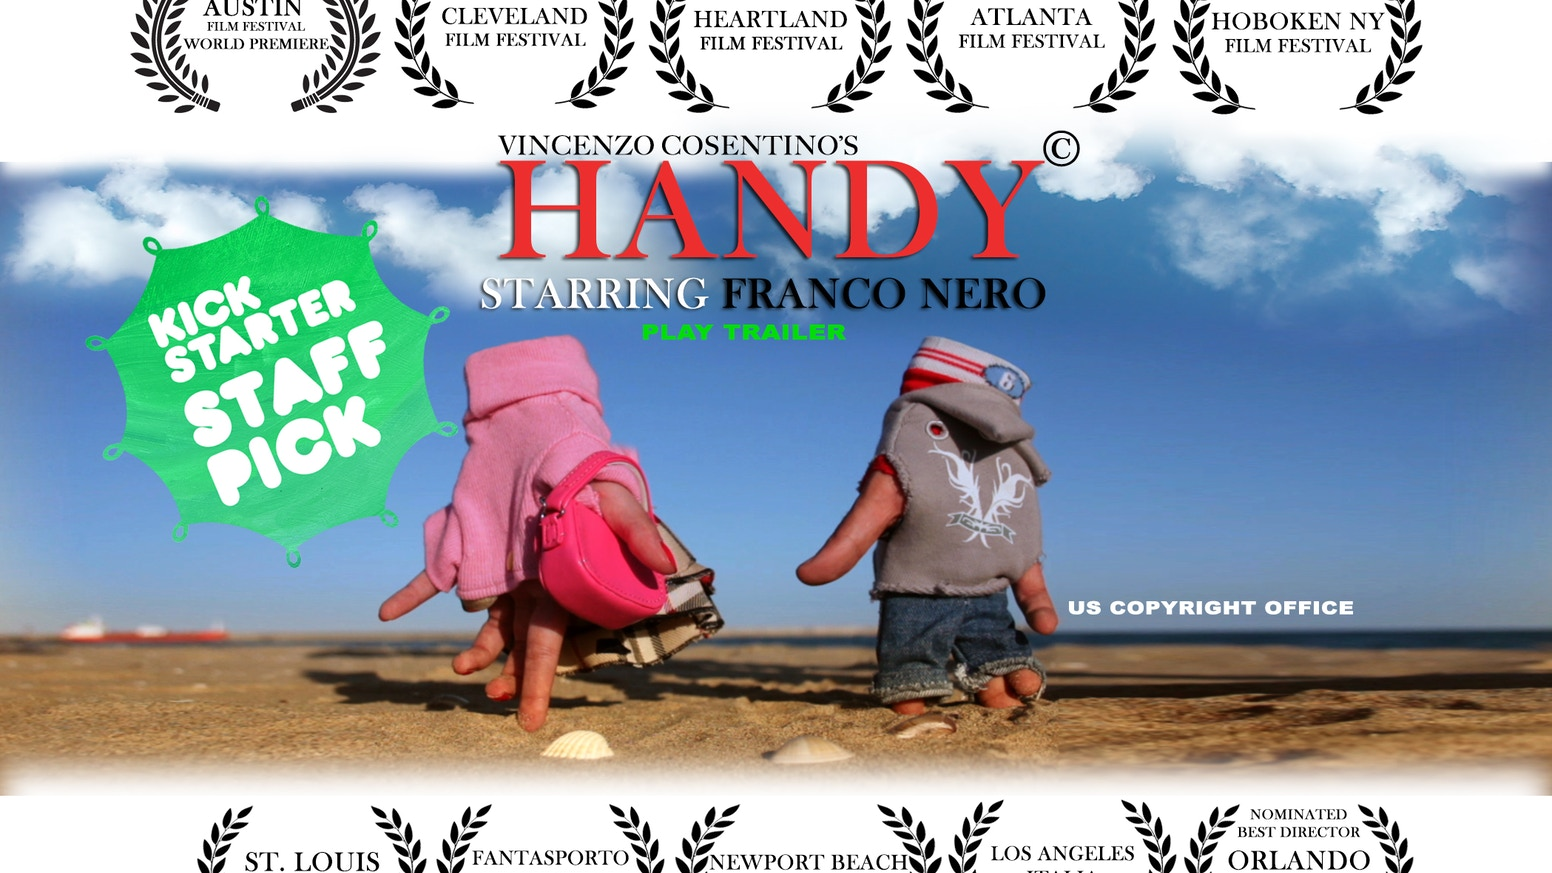 Be part of the HANDependence day! A unique film that needs your HAND to reach a cinema near you!Vincenzo Cosentino's first feature film